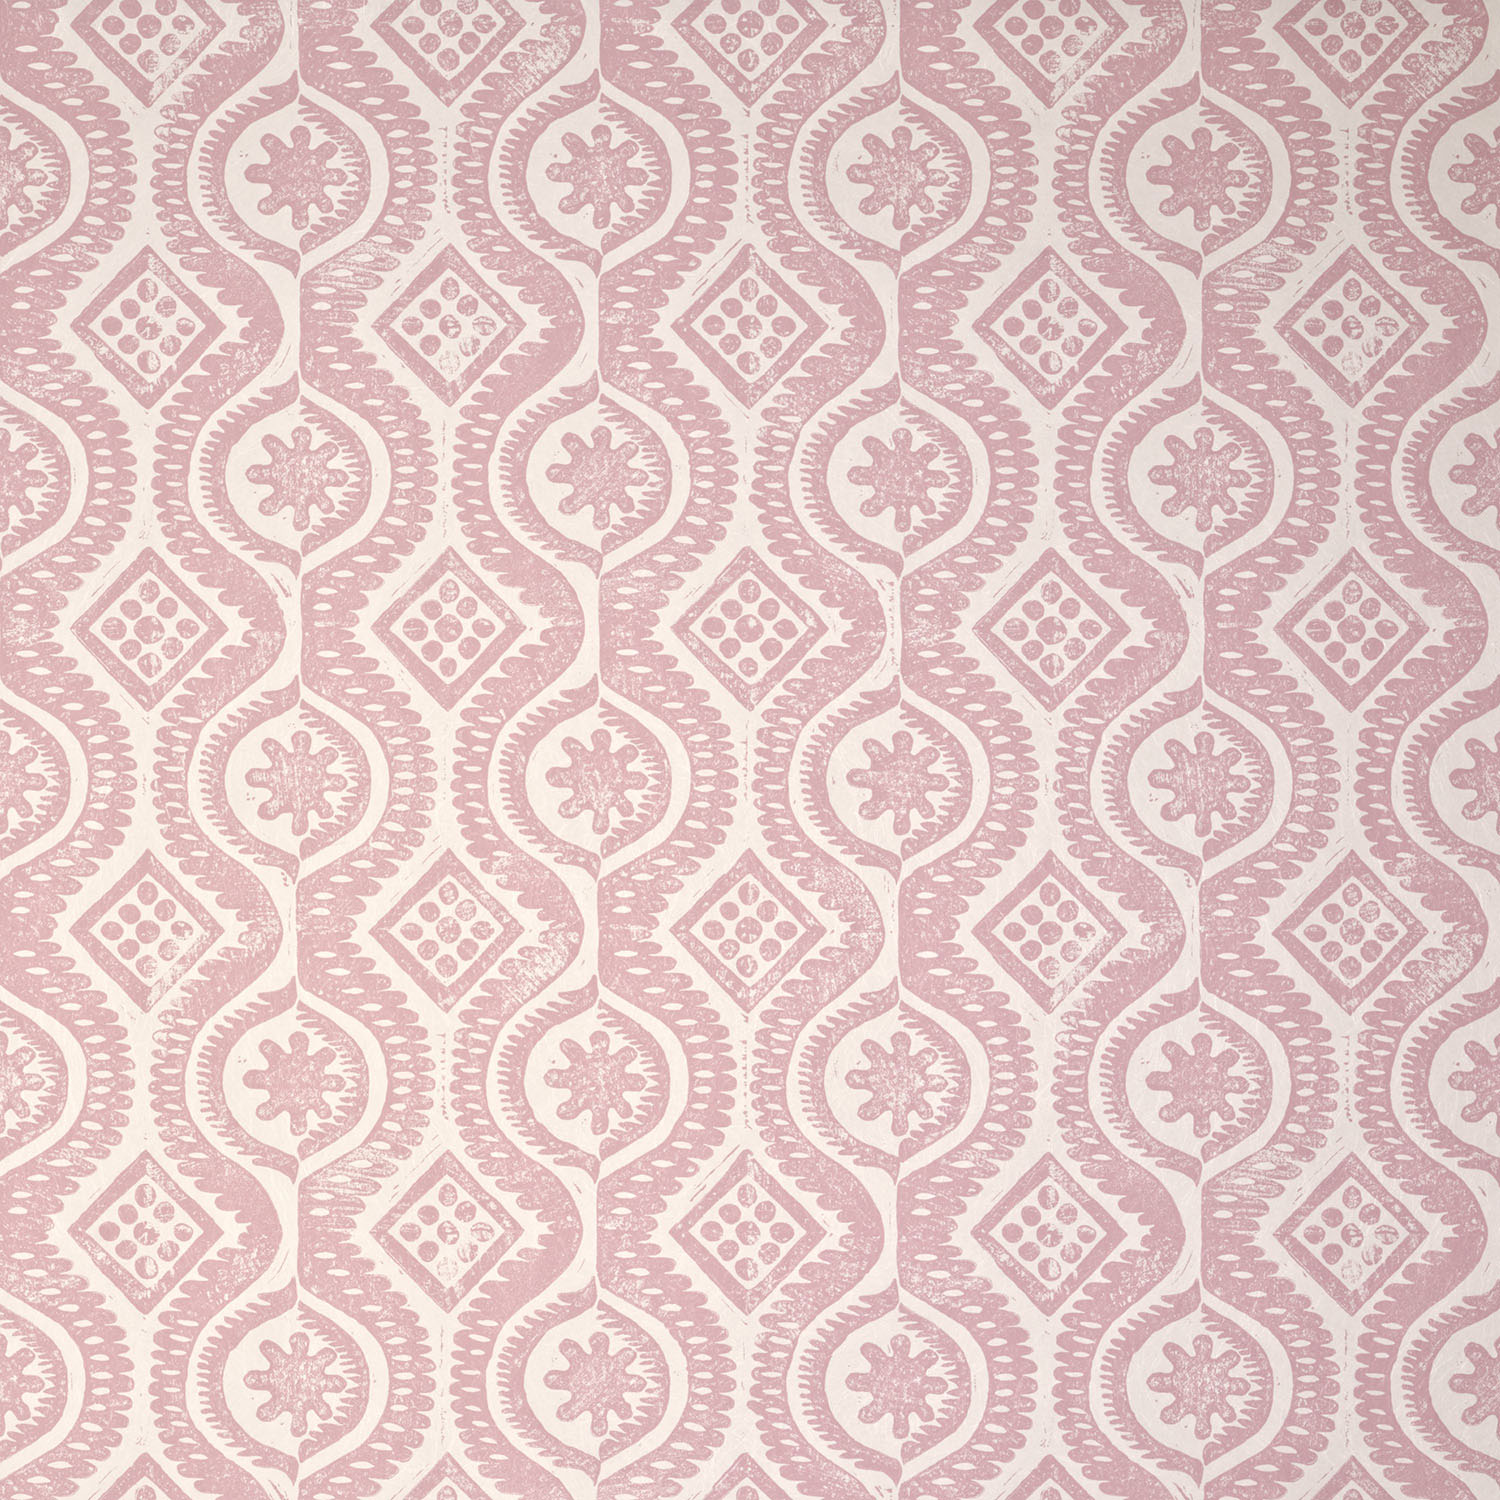 <p><strong>DAMASK</strong>pink 850-08<a href=/the-peggy-angus-collection/damask-pinky-850-08>More →</a></p>